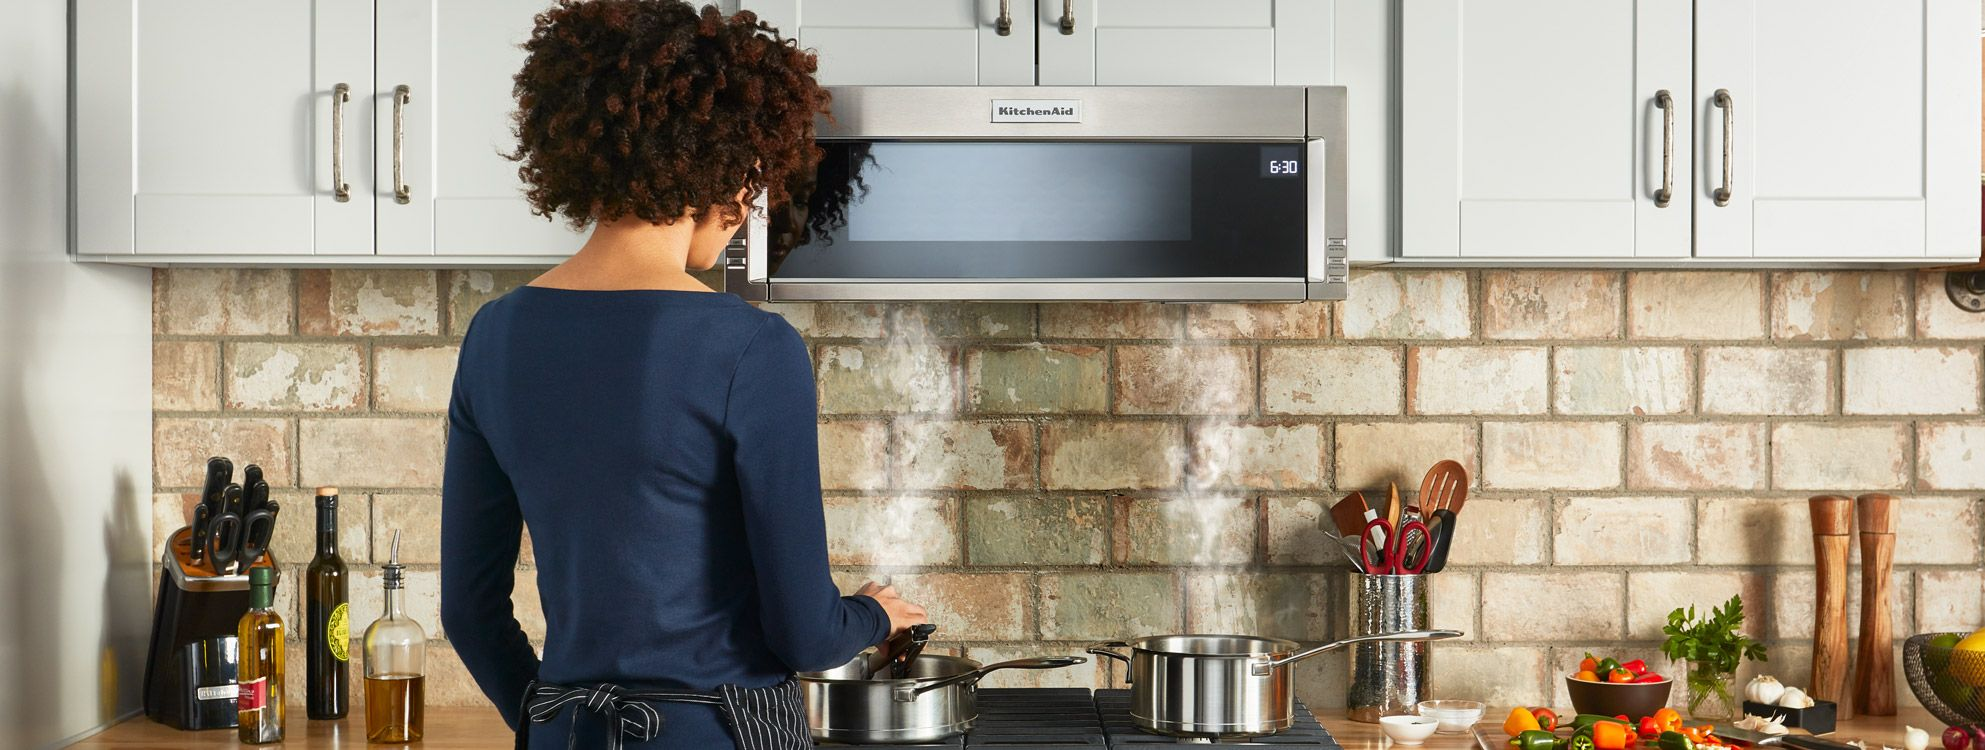 Woman cooking at KitchenAid oven range. In front is a KitchenAid microwave.